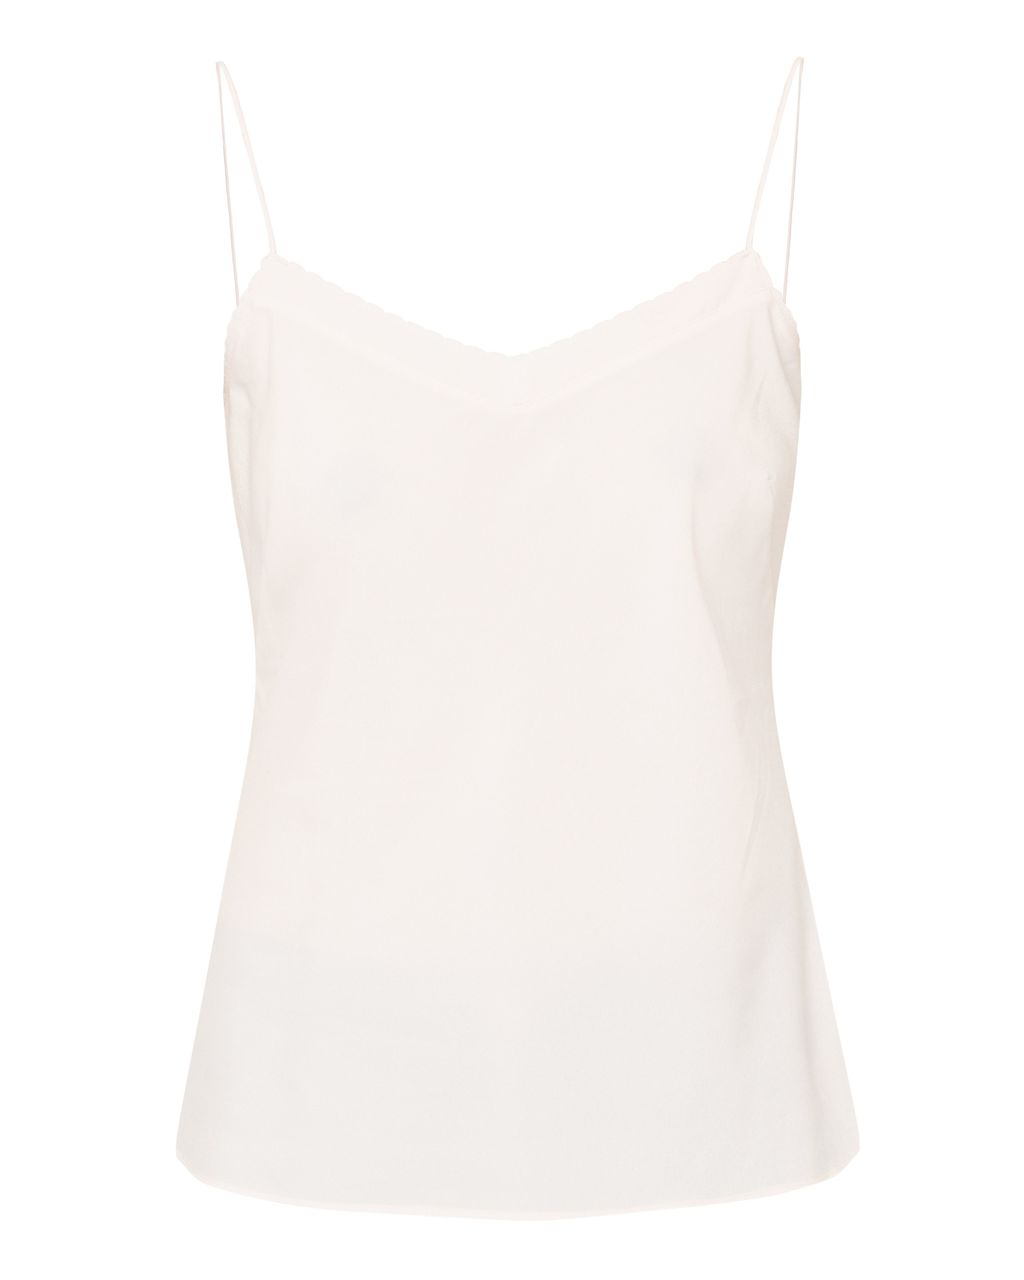 Tissa Scalloped Edge Cami Top, Blush - neckline: v-neck; sleeve style: spaghetti straps; pattern: plain; style: camisole; predominant colour: blush; occasions: casual, creative work; length: standard; fibres: polyester/polyamide - 100%; fit: straight cut; sleeve length: sleeveless; texture group: crepes; pattern type: fabric; season: s/s 2016; wardrobe: basic